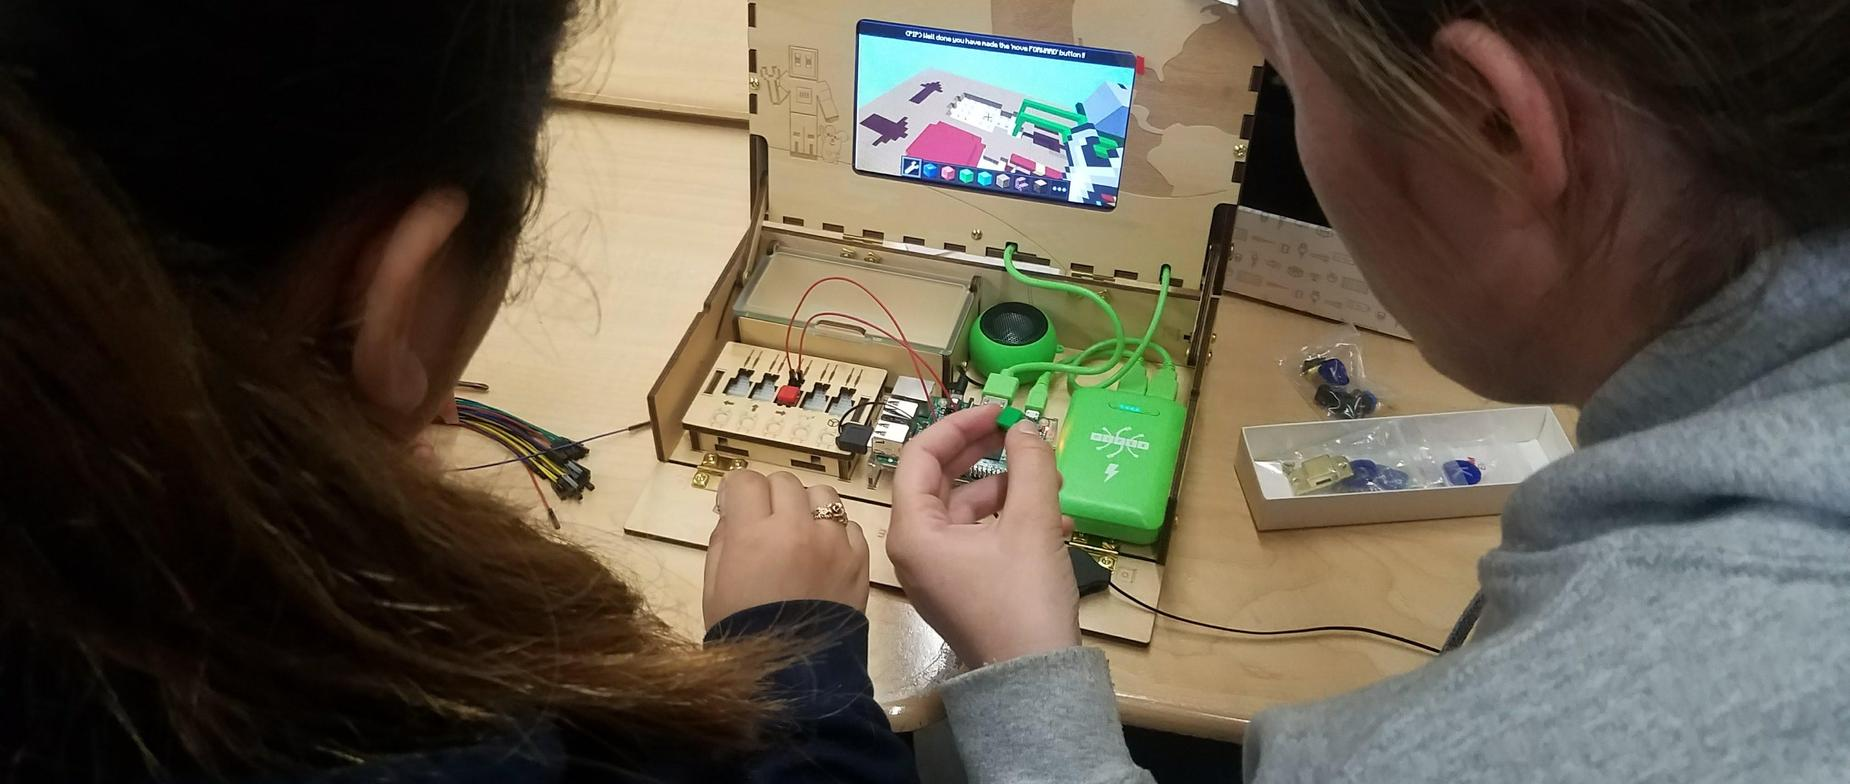 2 female students learning about programming and circuitry by building a computer